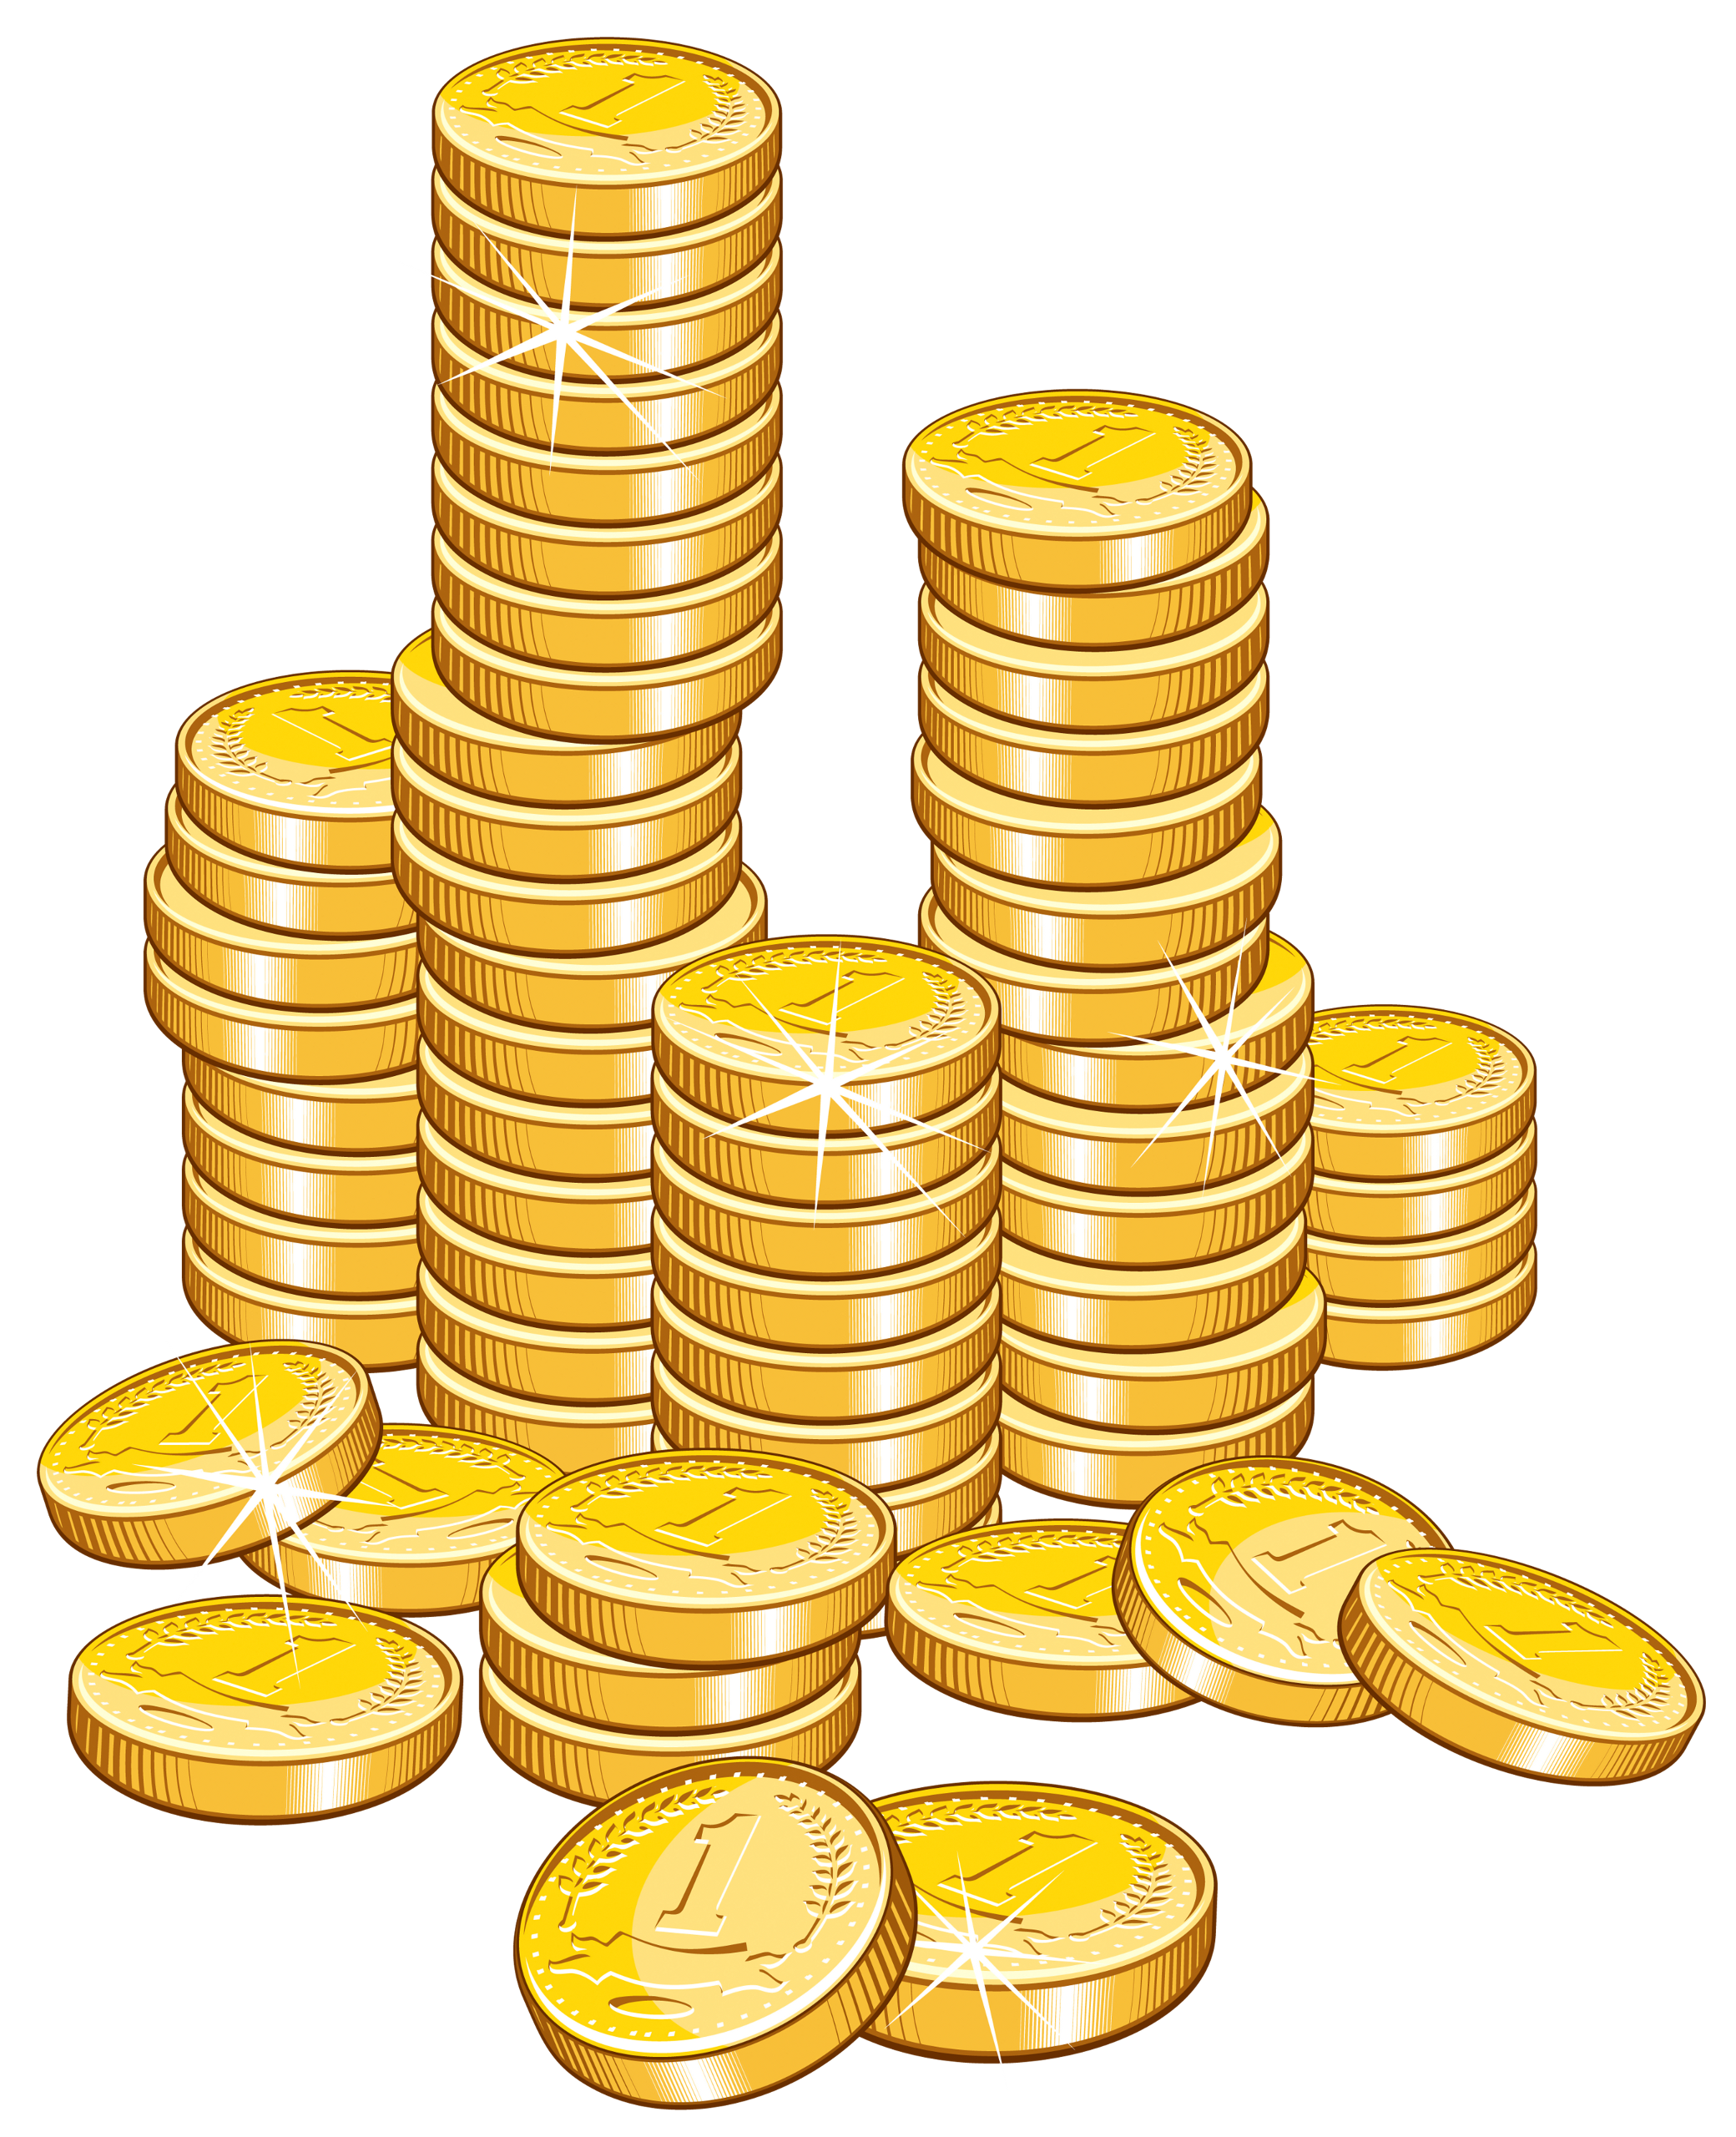 Free Pictures Of Money - Cliparts.co